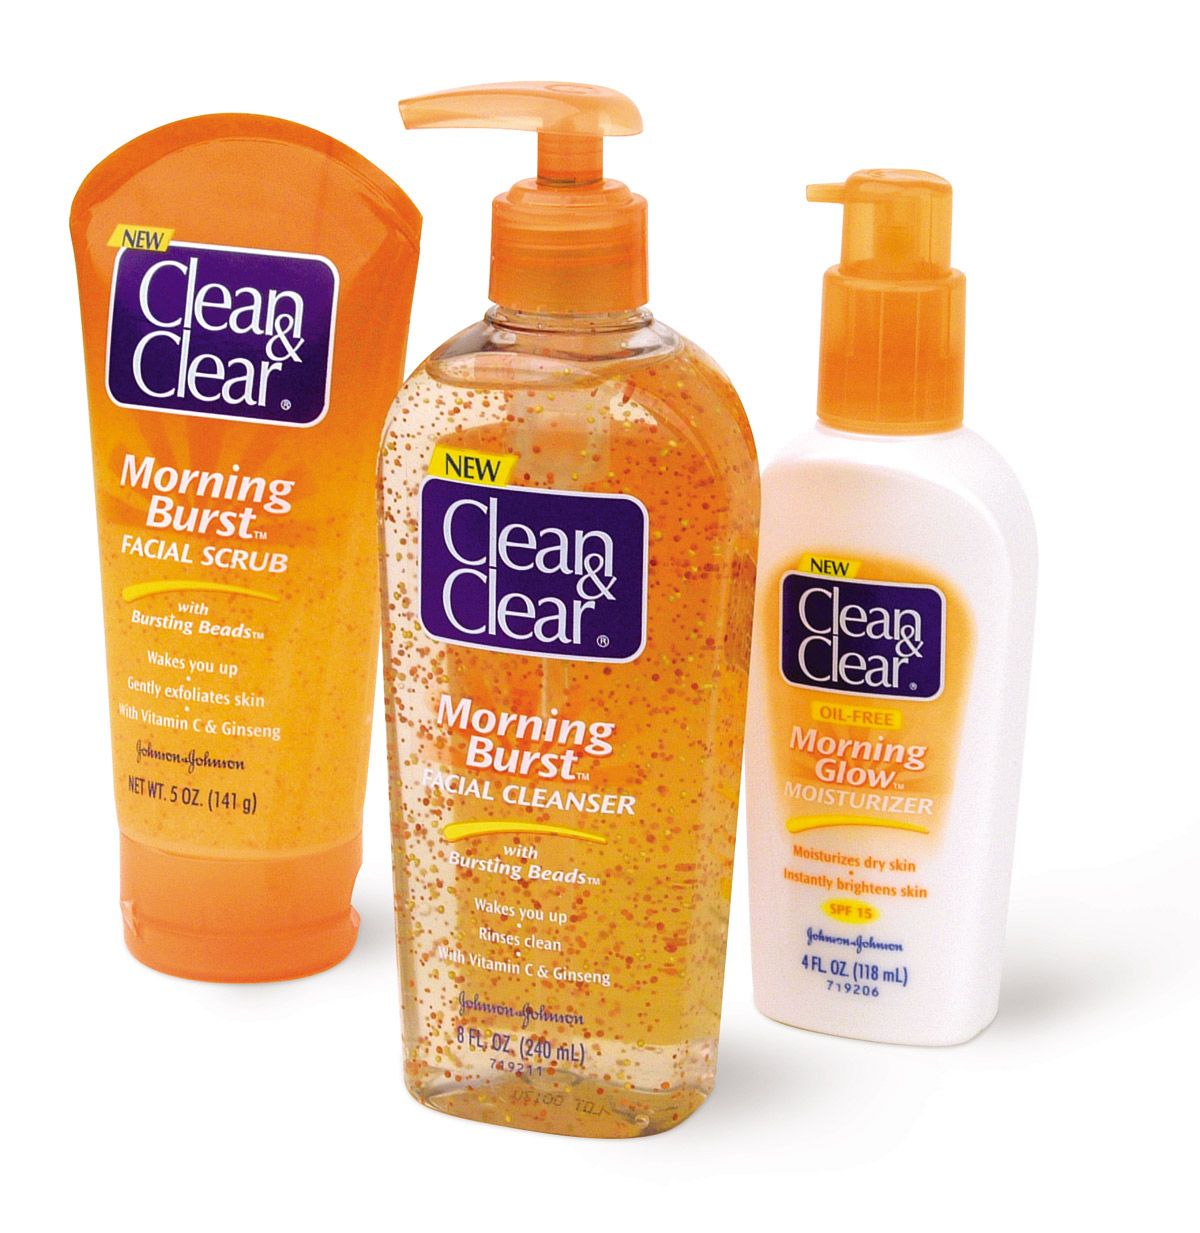 Clean & Clear Only 1.64 at Walgreens or 1.89 at Target